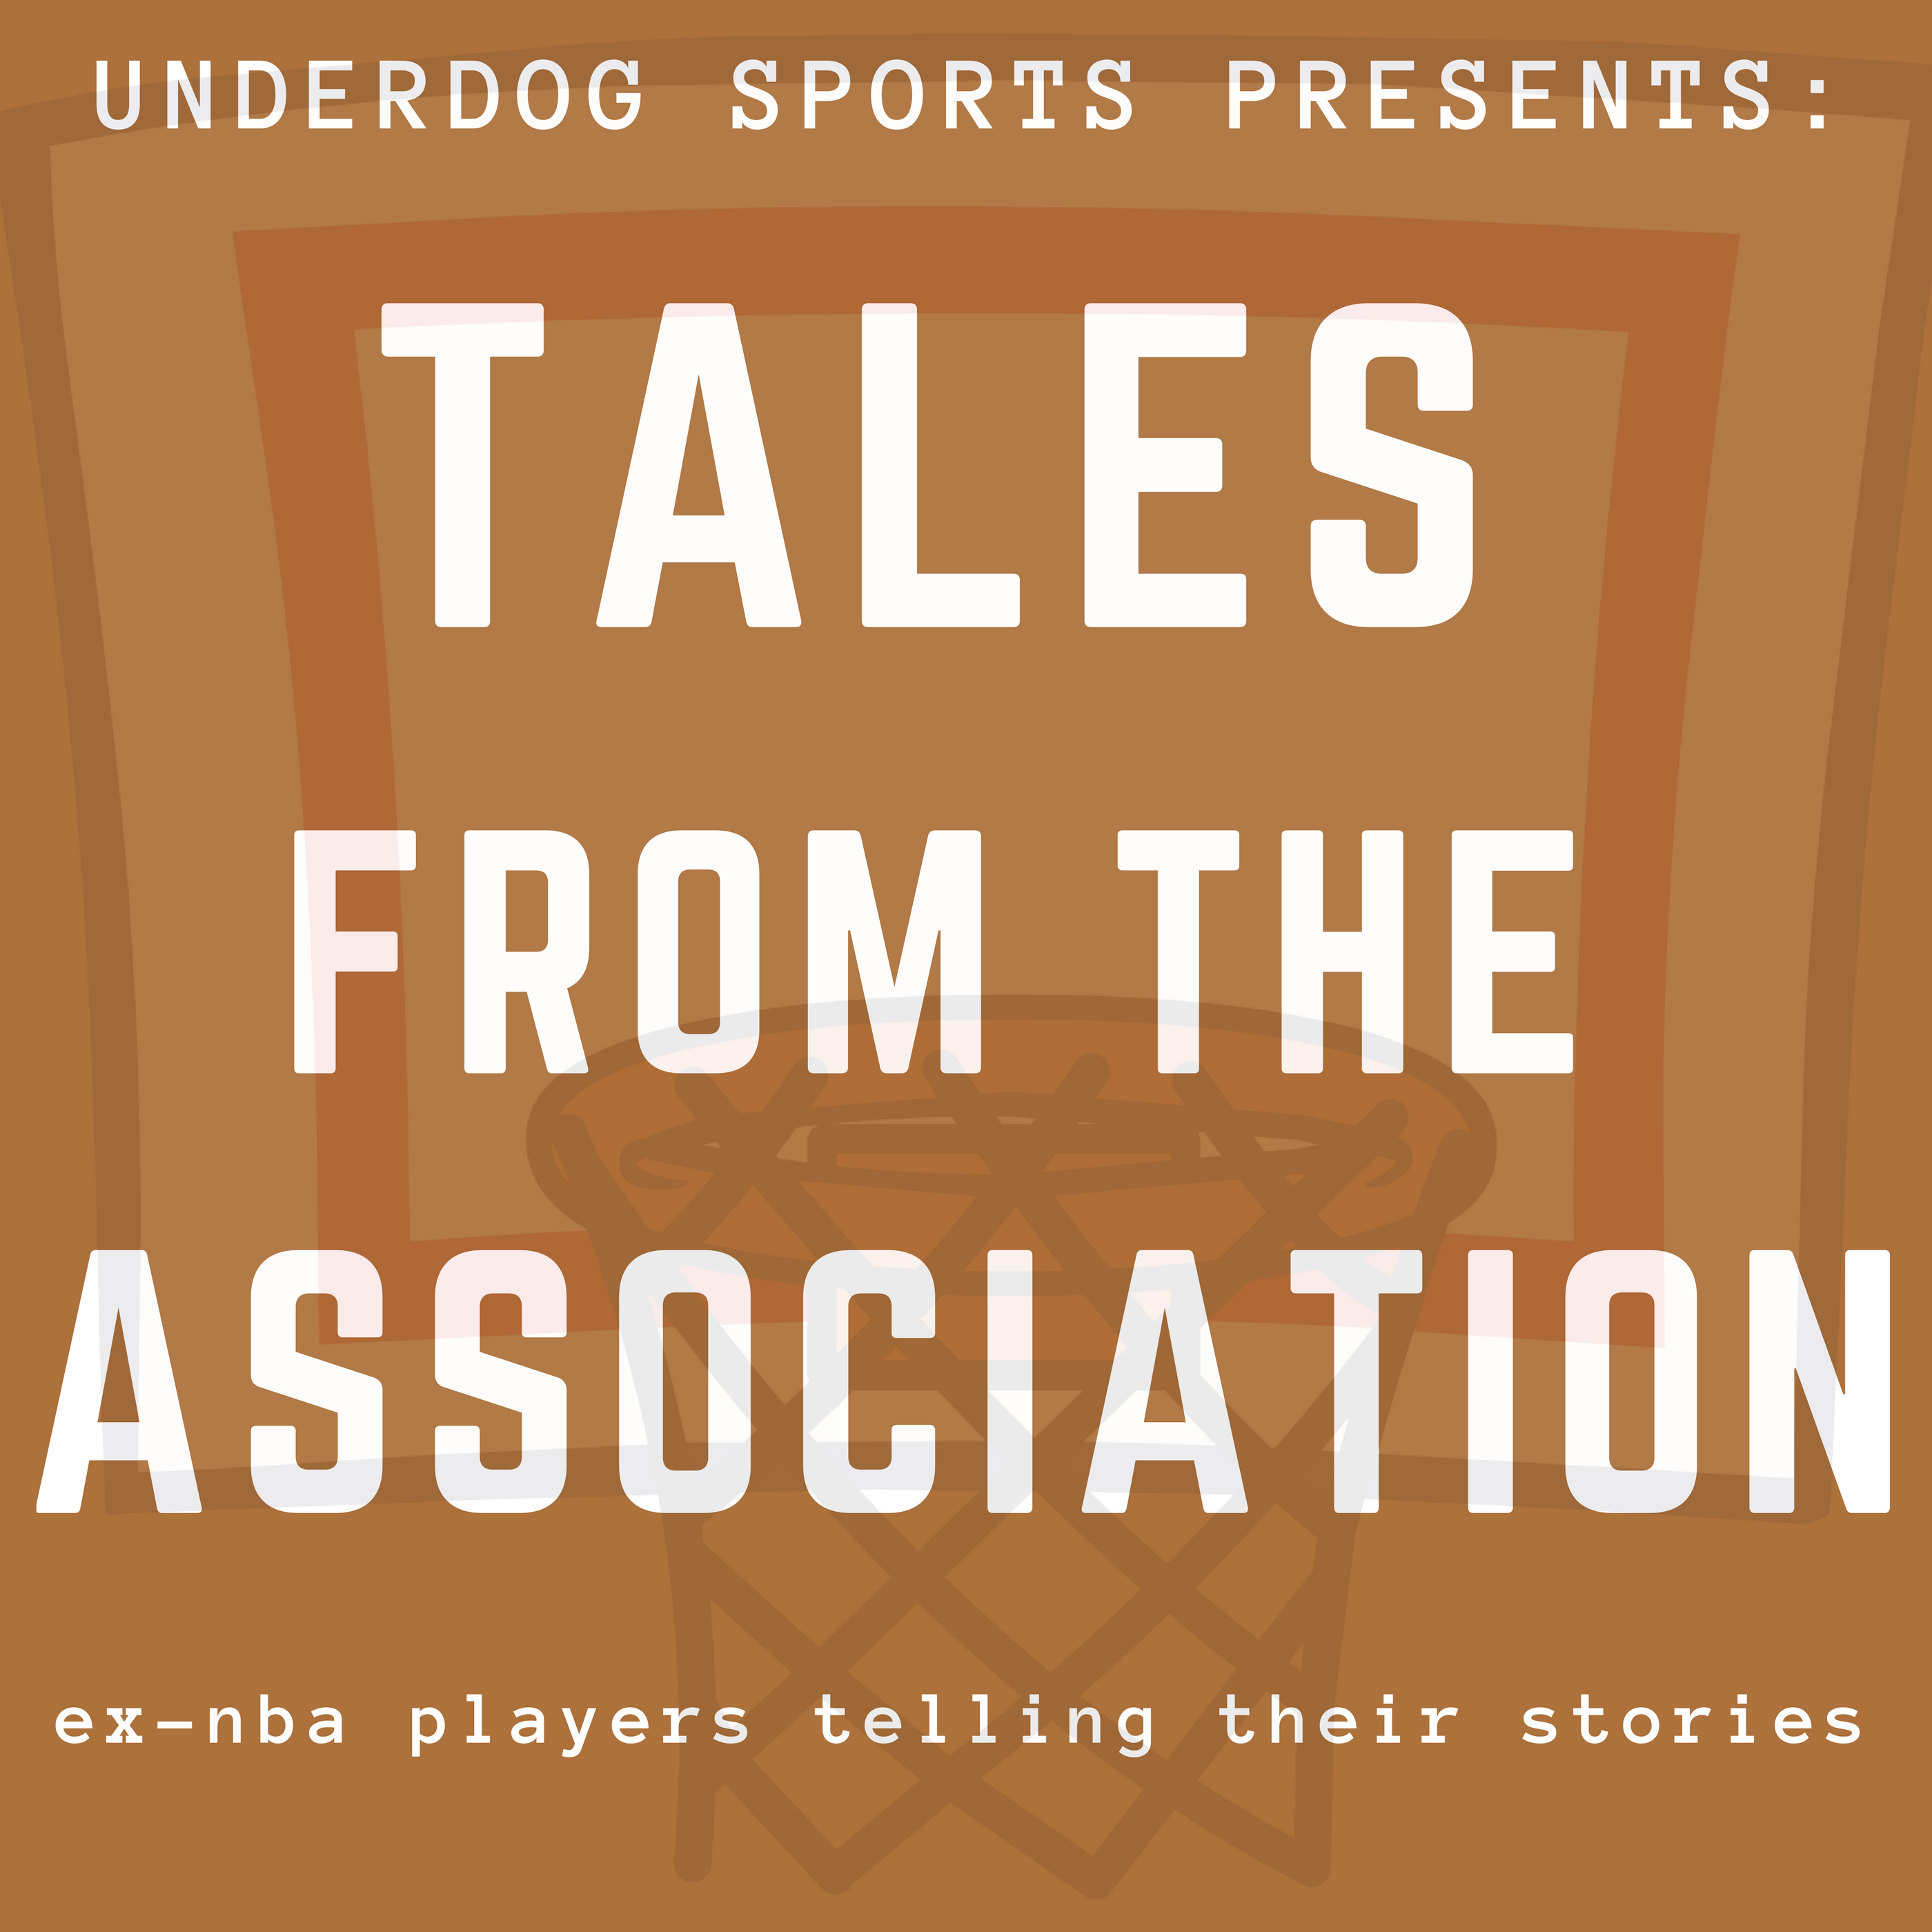 Tales from the Association: Greg Minor